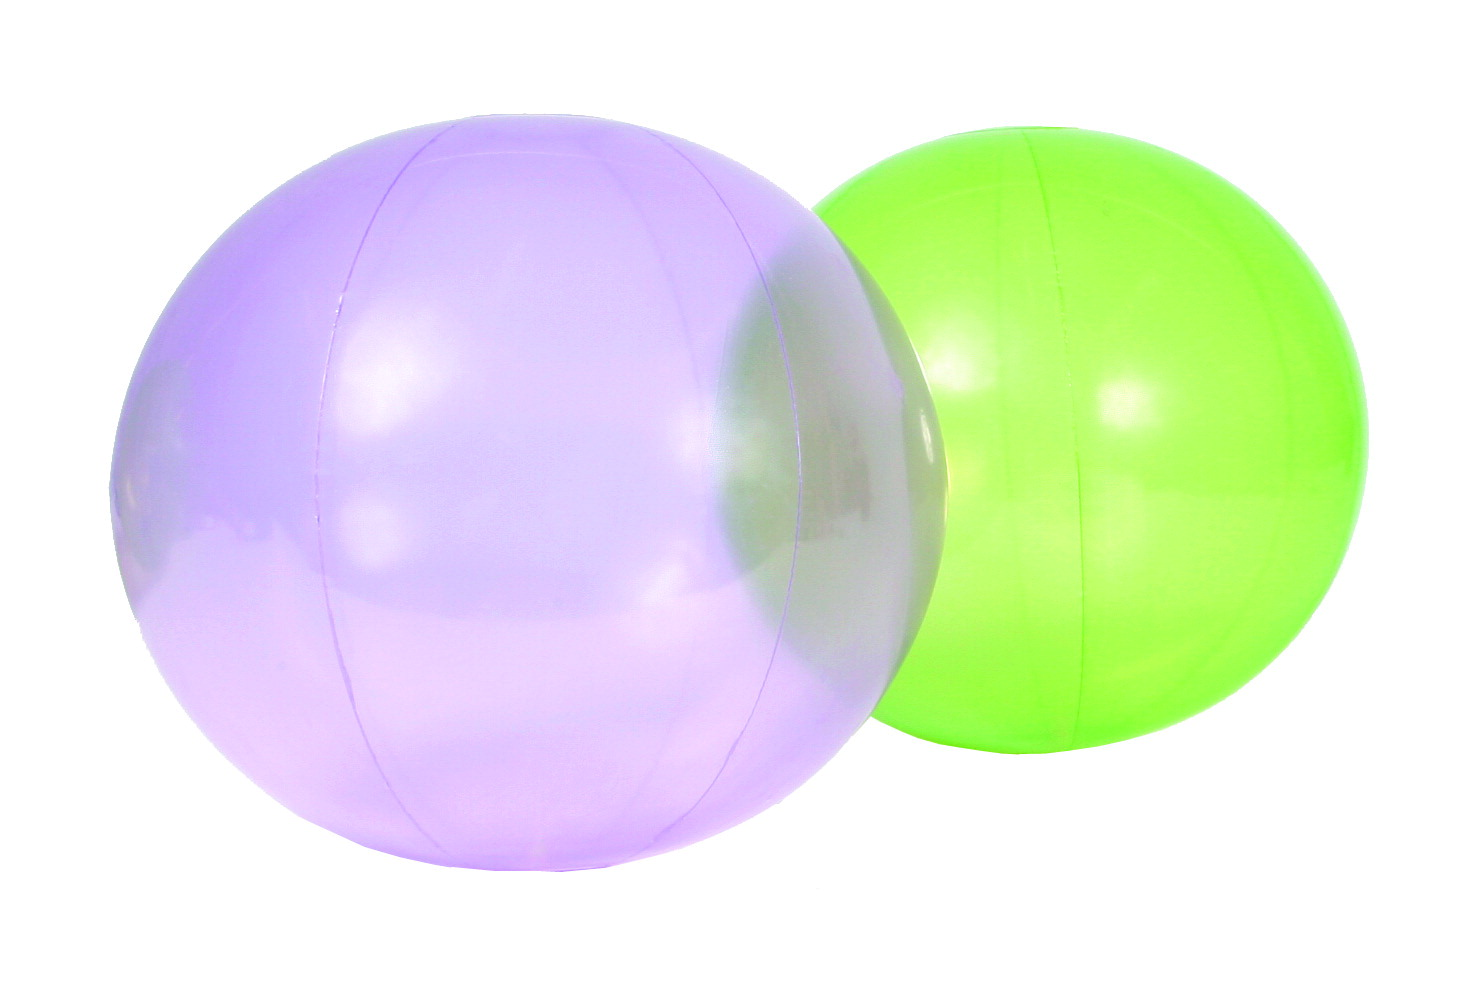 Sportime FingerLights Balls, 16 Inches, Green/Purple, Set of 2